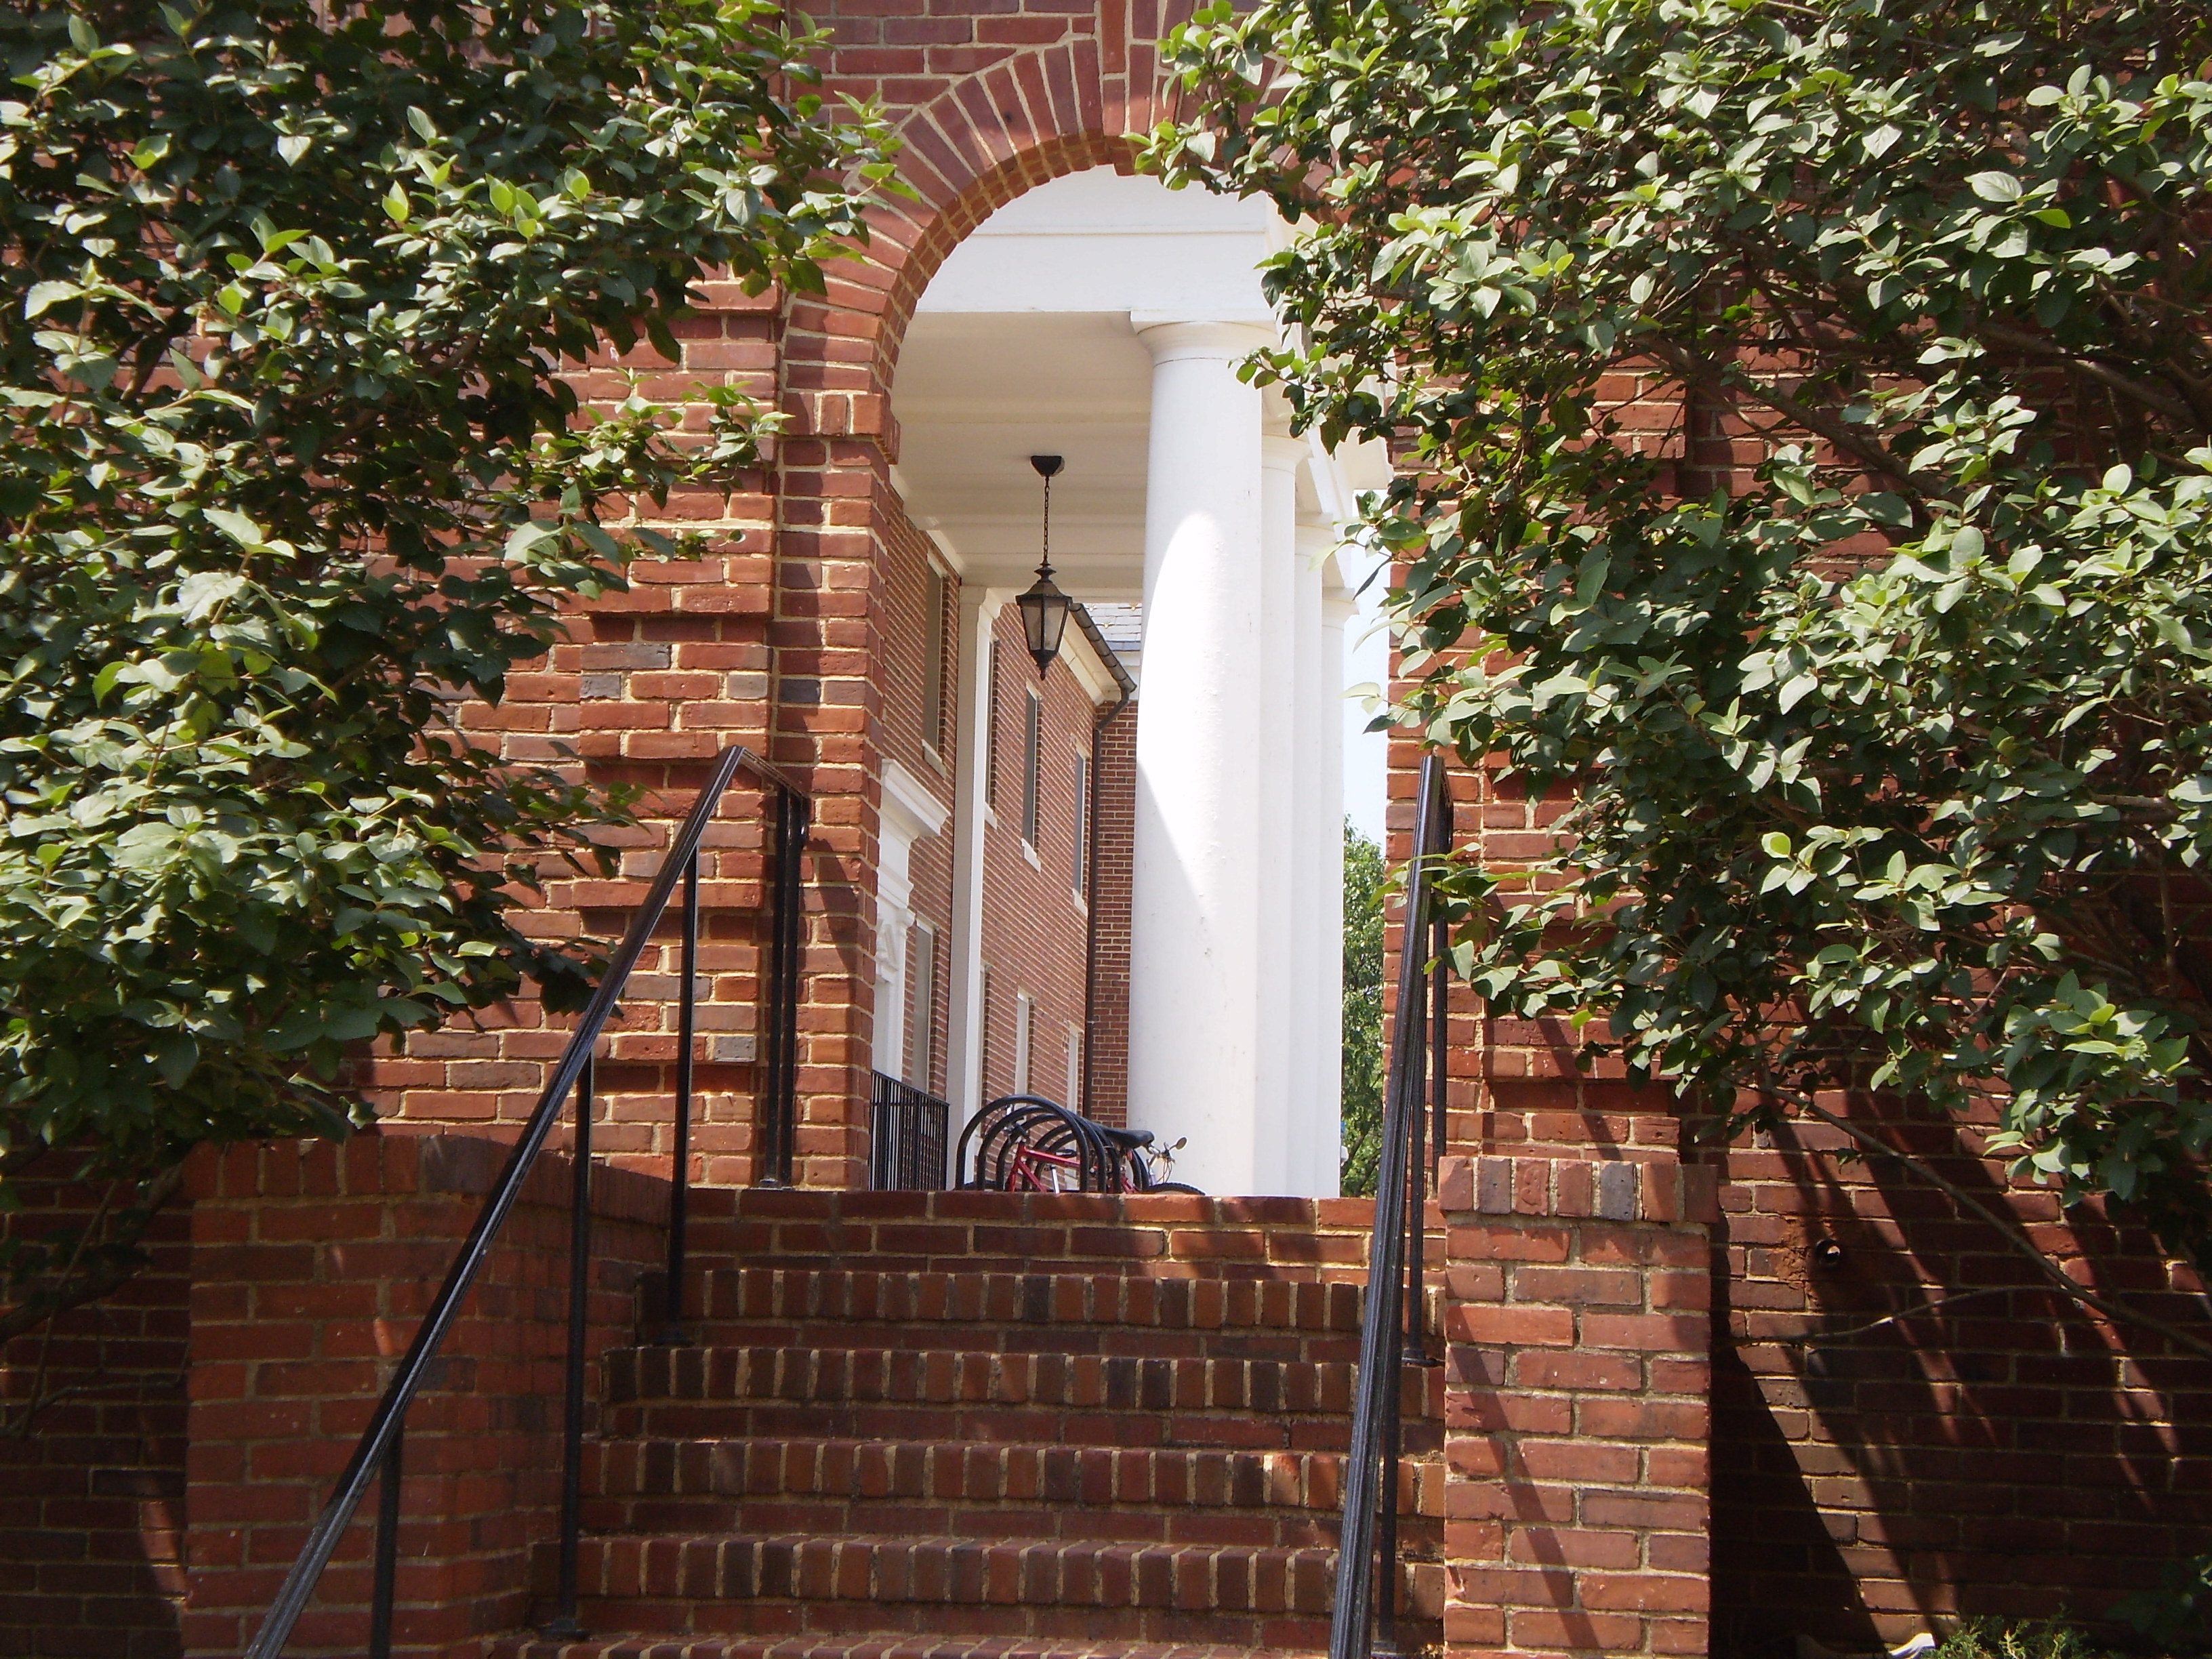 File:UMD brick entryway.JPG - Wikimedia Commons